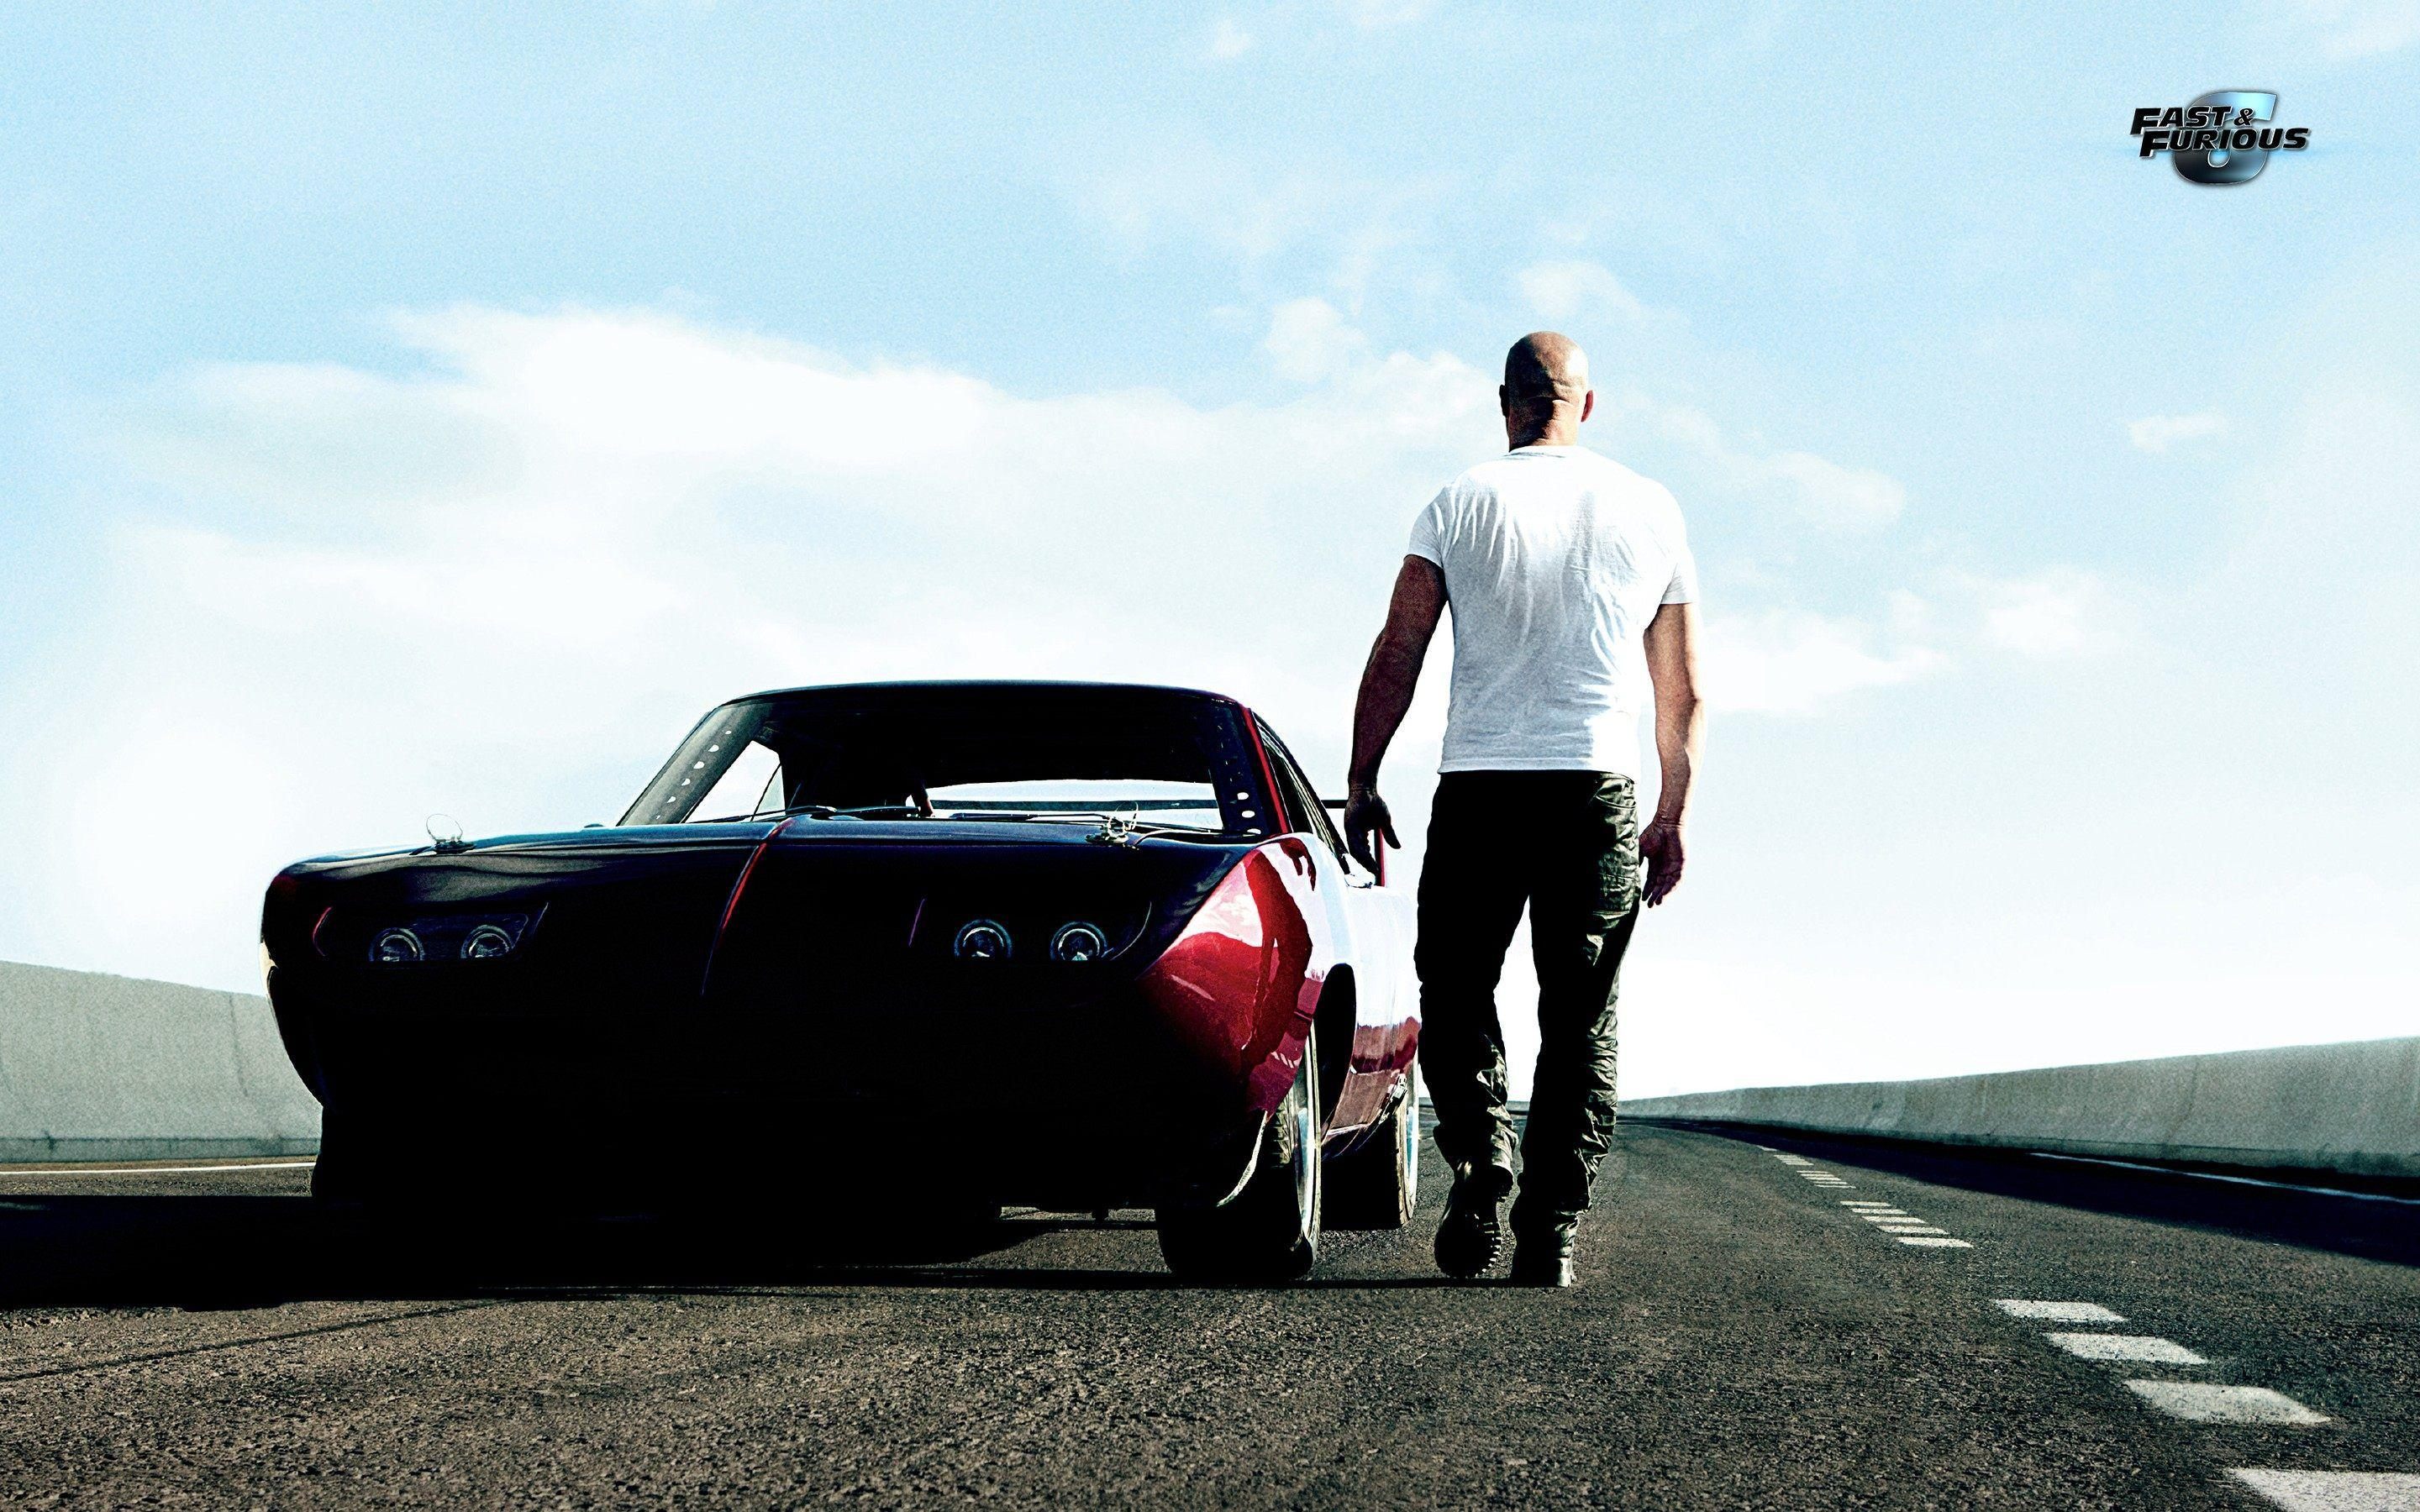 8 Reasons the 'Fast and Furious' Franchise Is Good for America